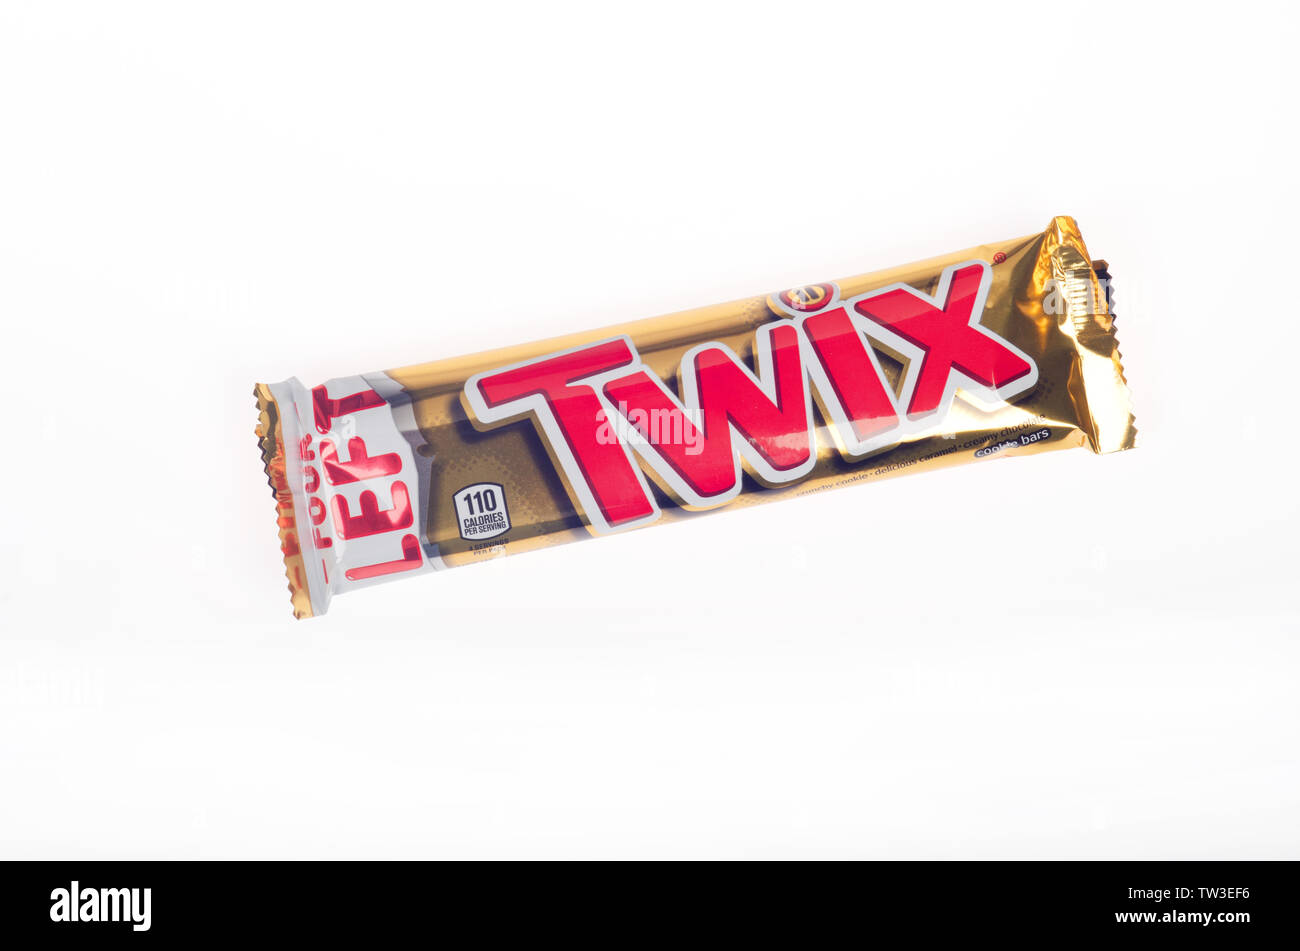 Twix candy bar in wrapper from Mars Wrigley on white background - Stock Image